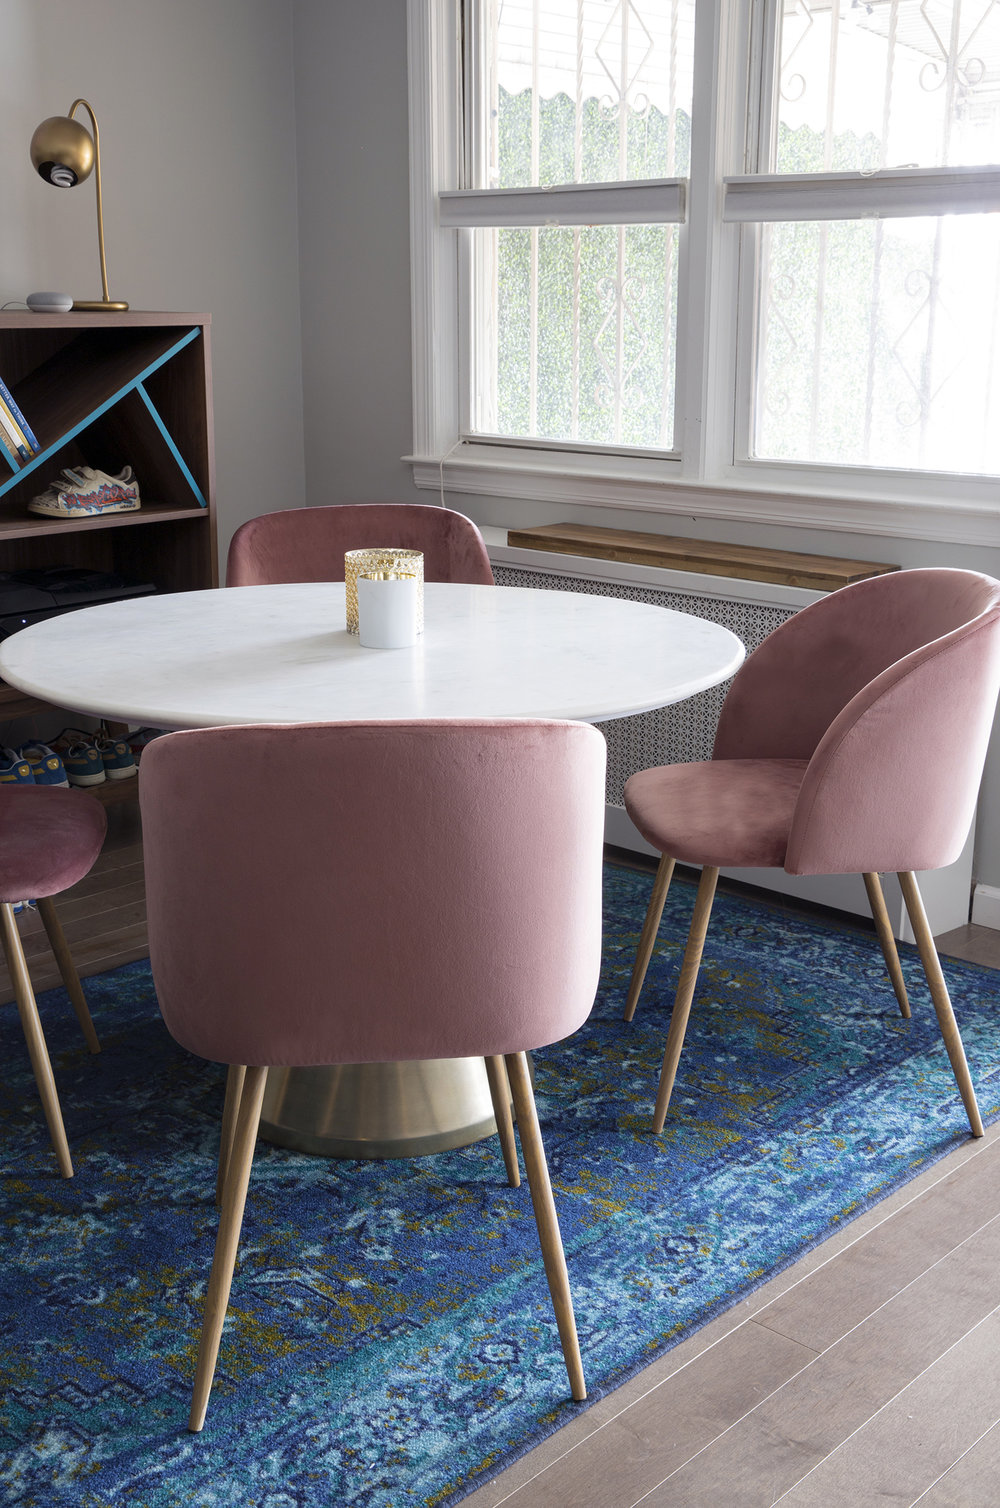 marble table pink chairs blue rug dining room decor.jpg